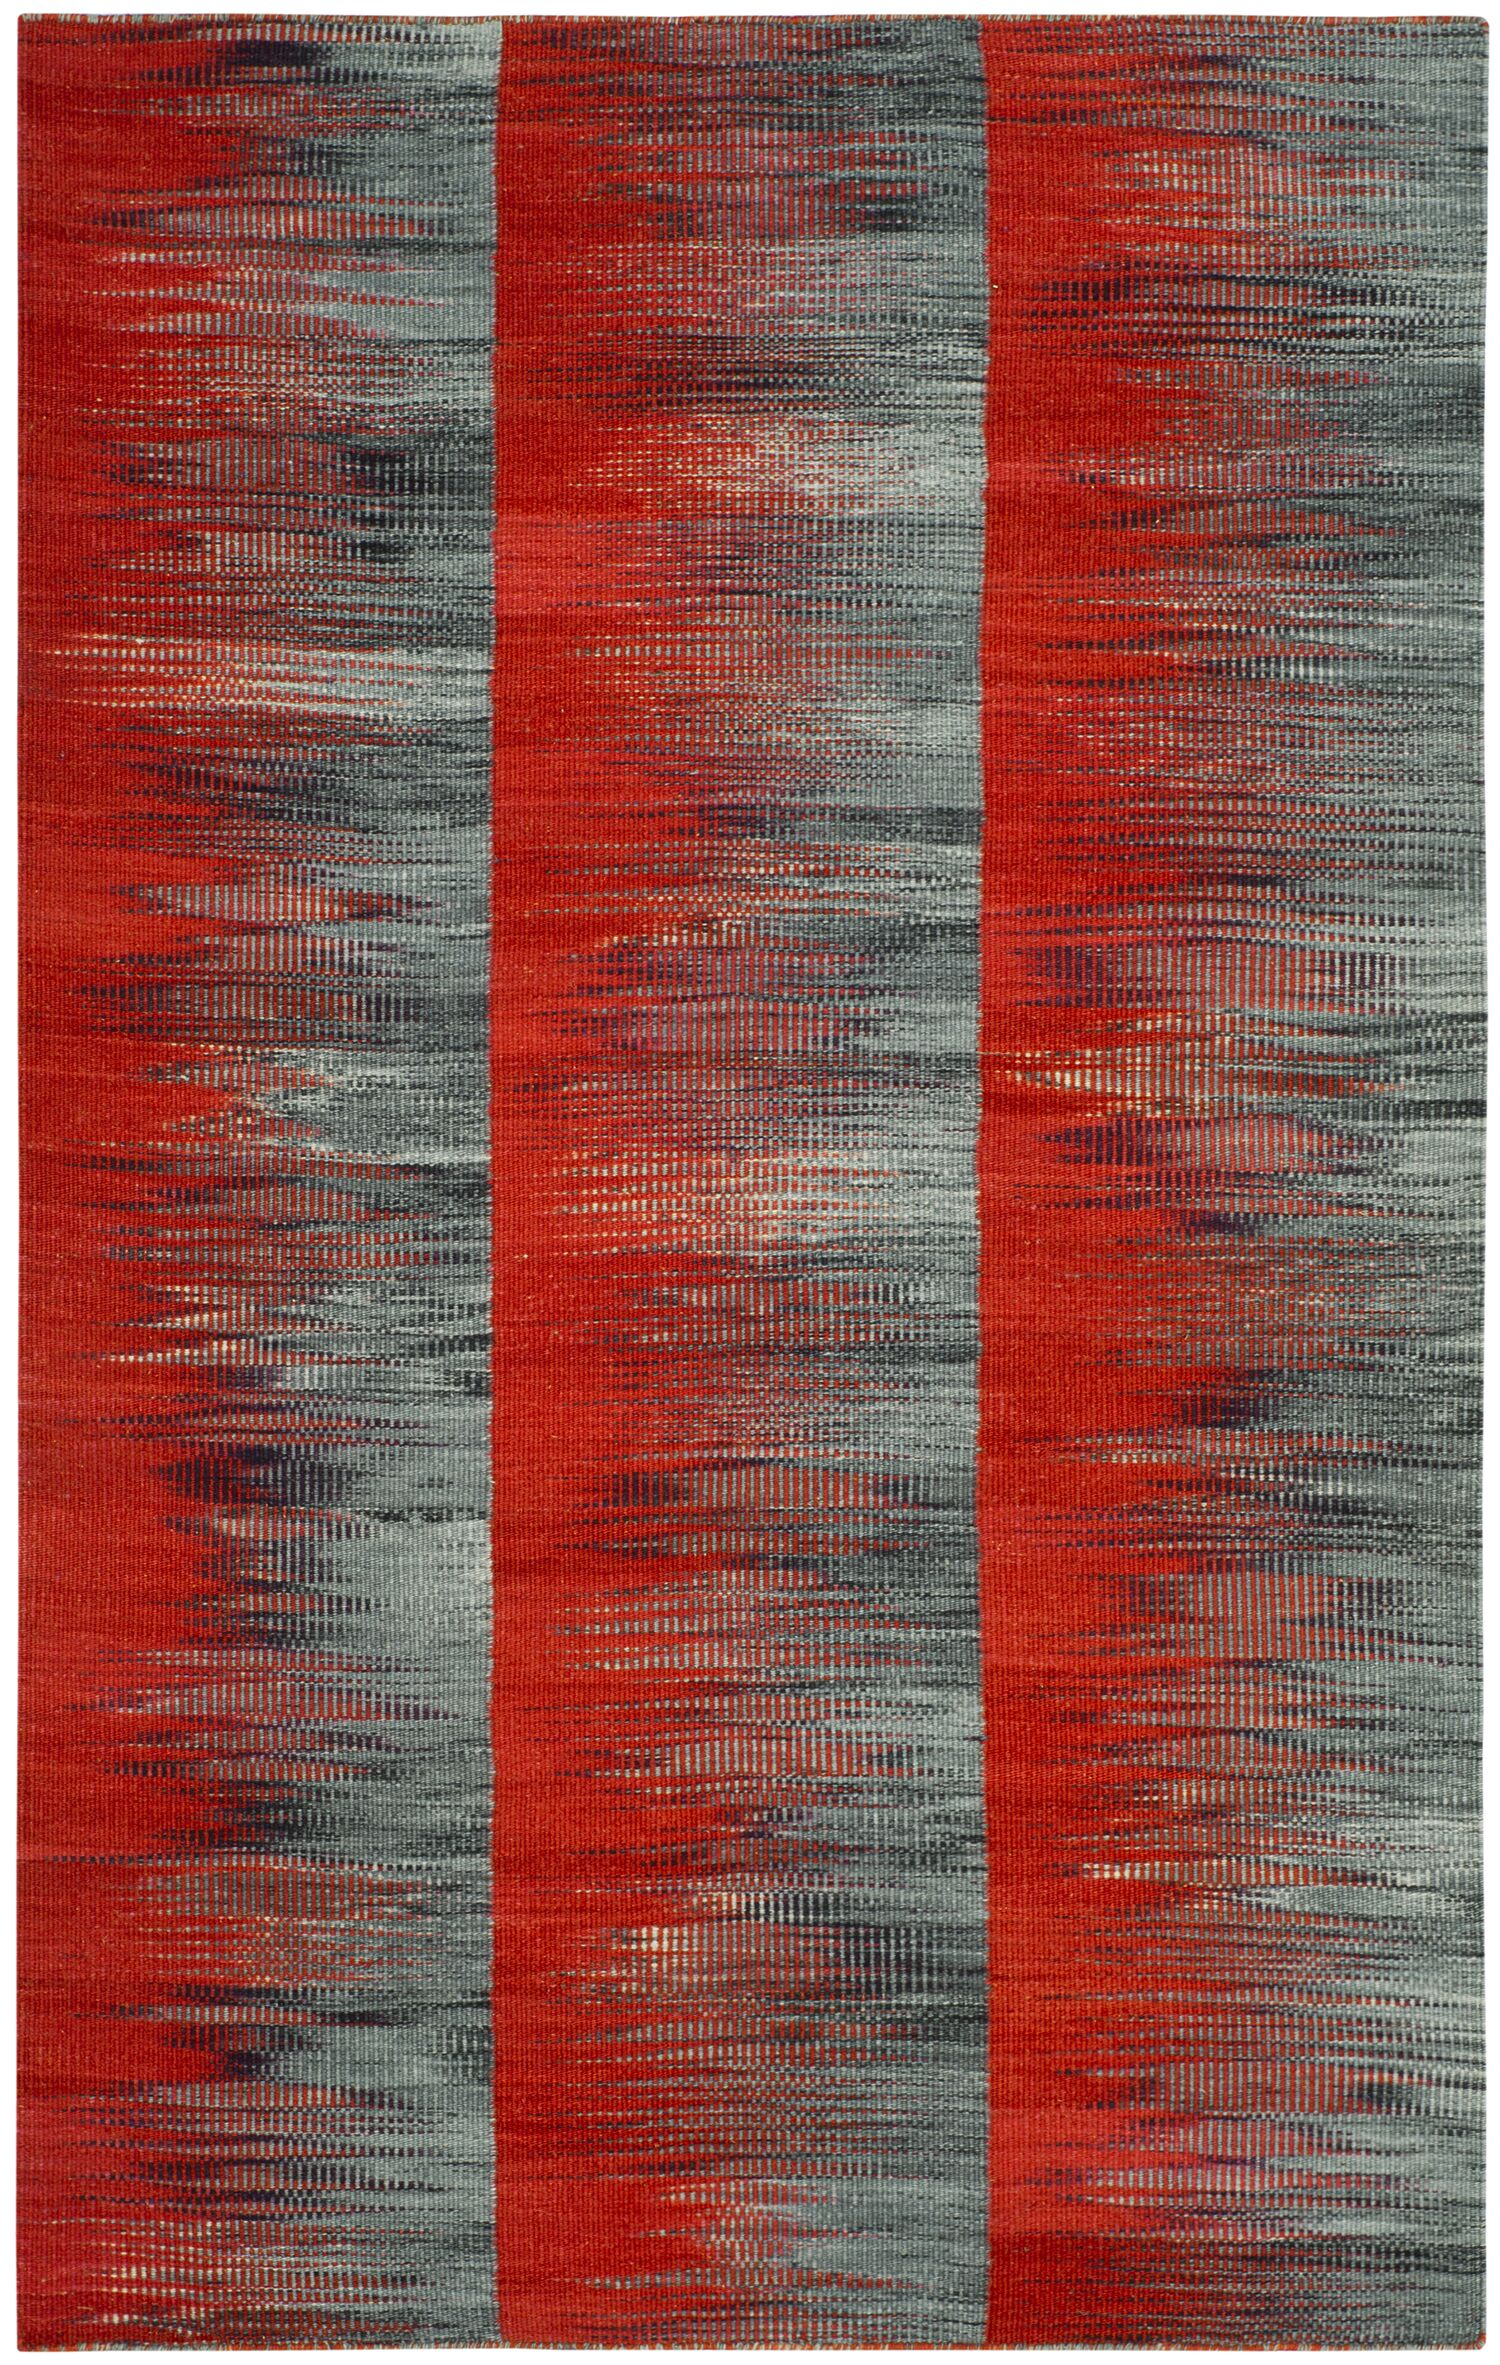 Amerina Hand-Woven Red/Charcoal Area Rug Rug Size: Rectangle 4' x 6'